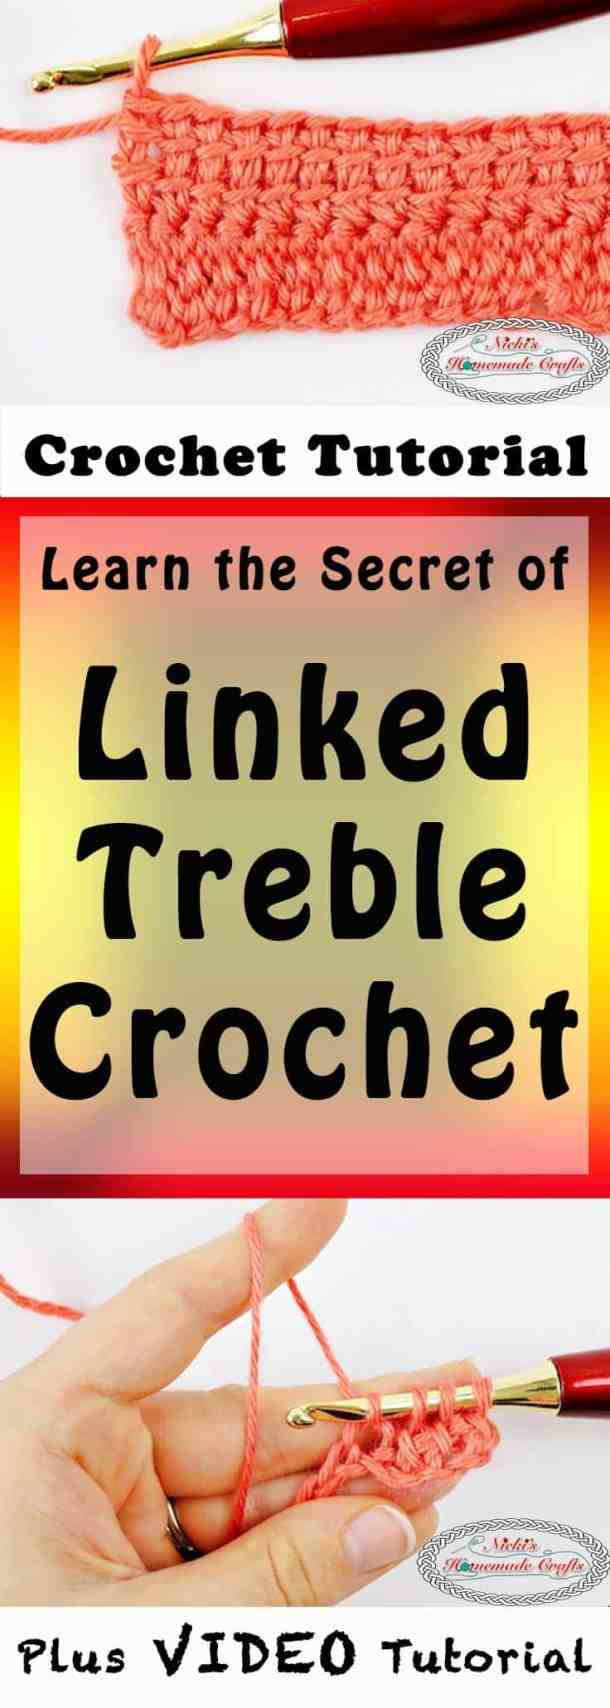 Linked Treble Crochet which is a Crochet Tutorial using Photos and a Video by Nicki's Homemade Crafts